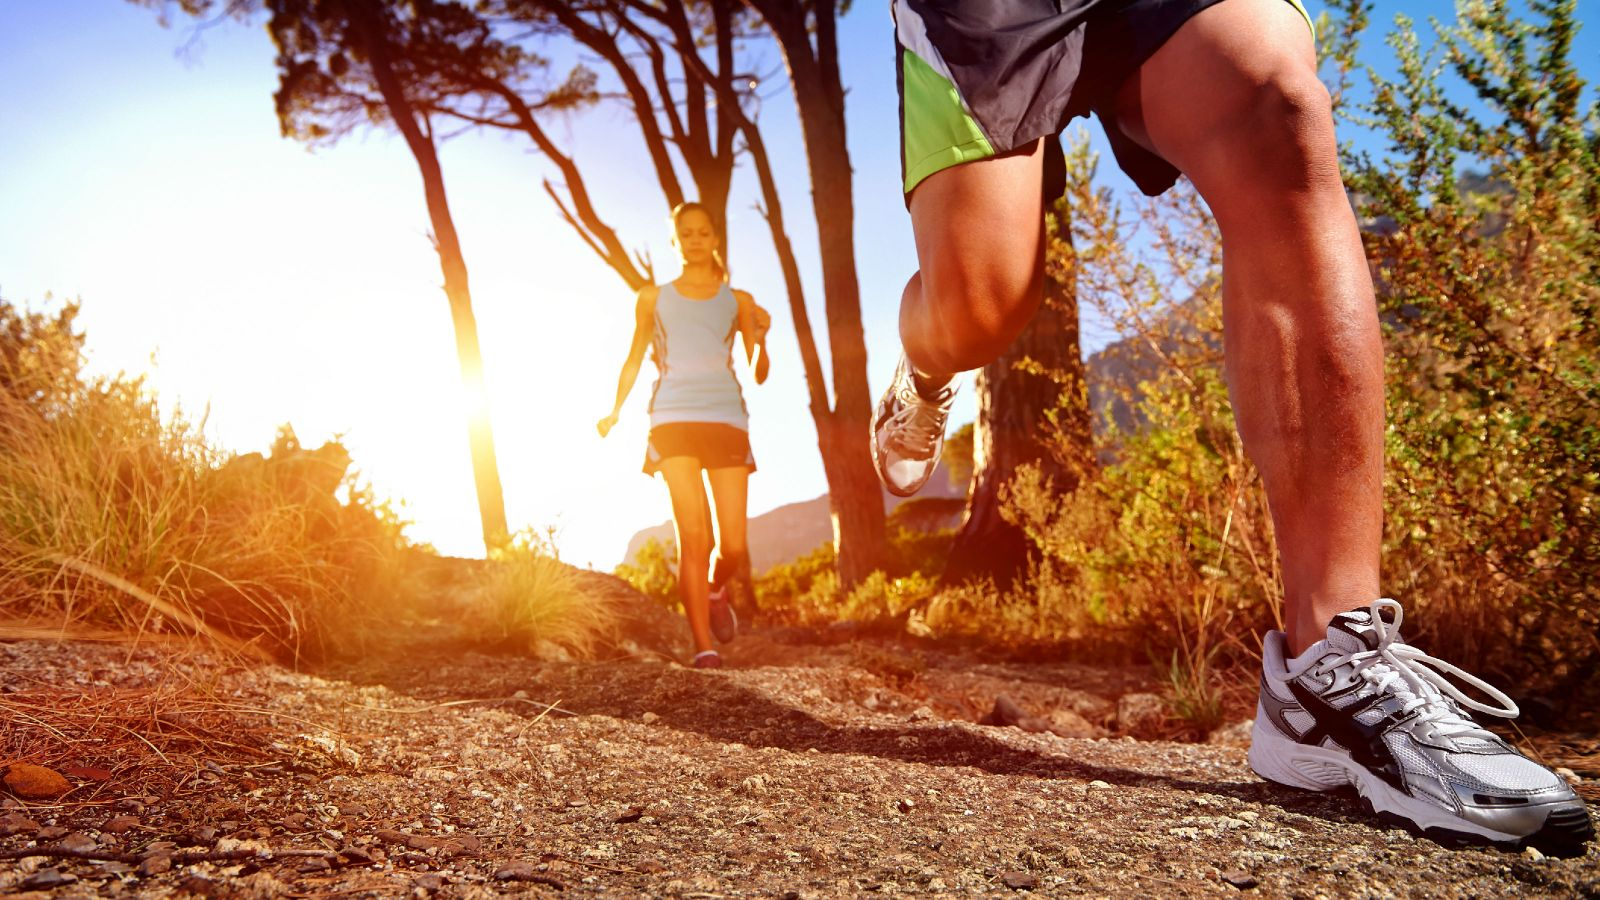 A man and a woman running through a forrest tree line on a sunny morning